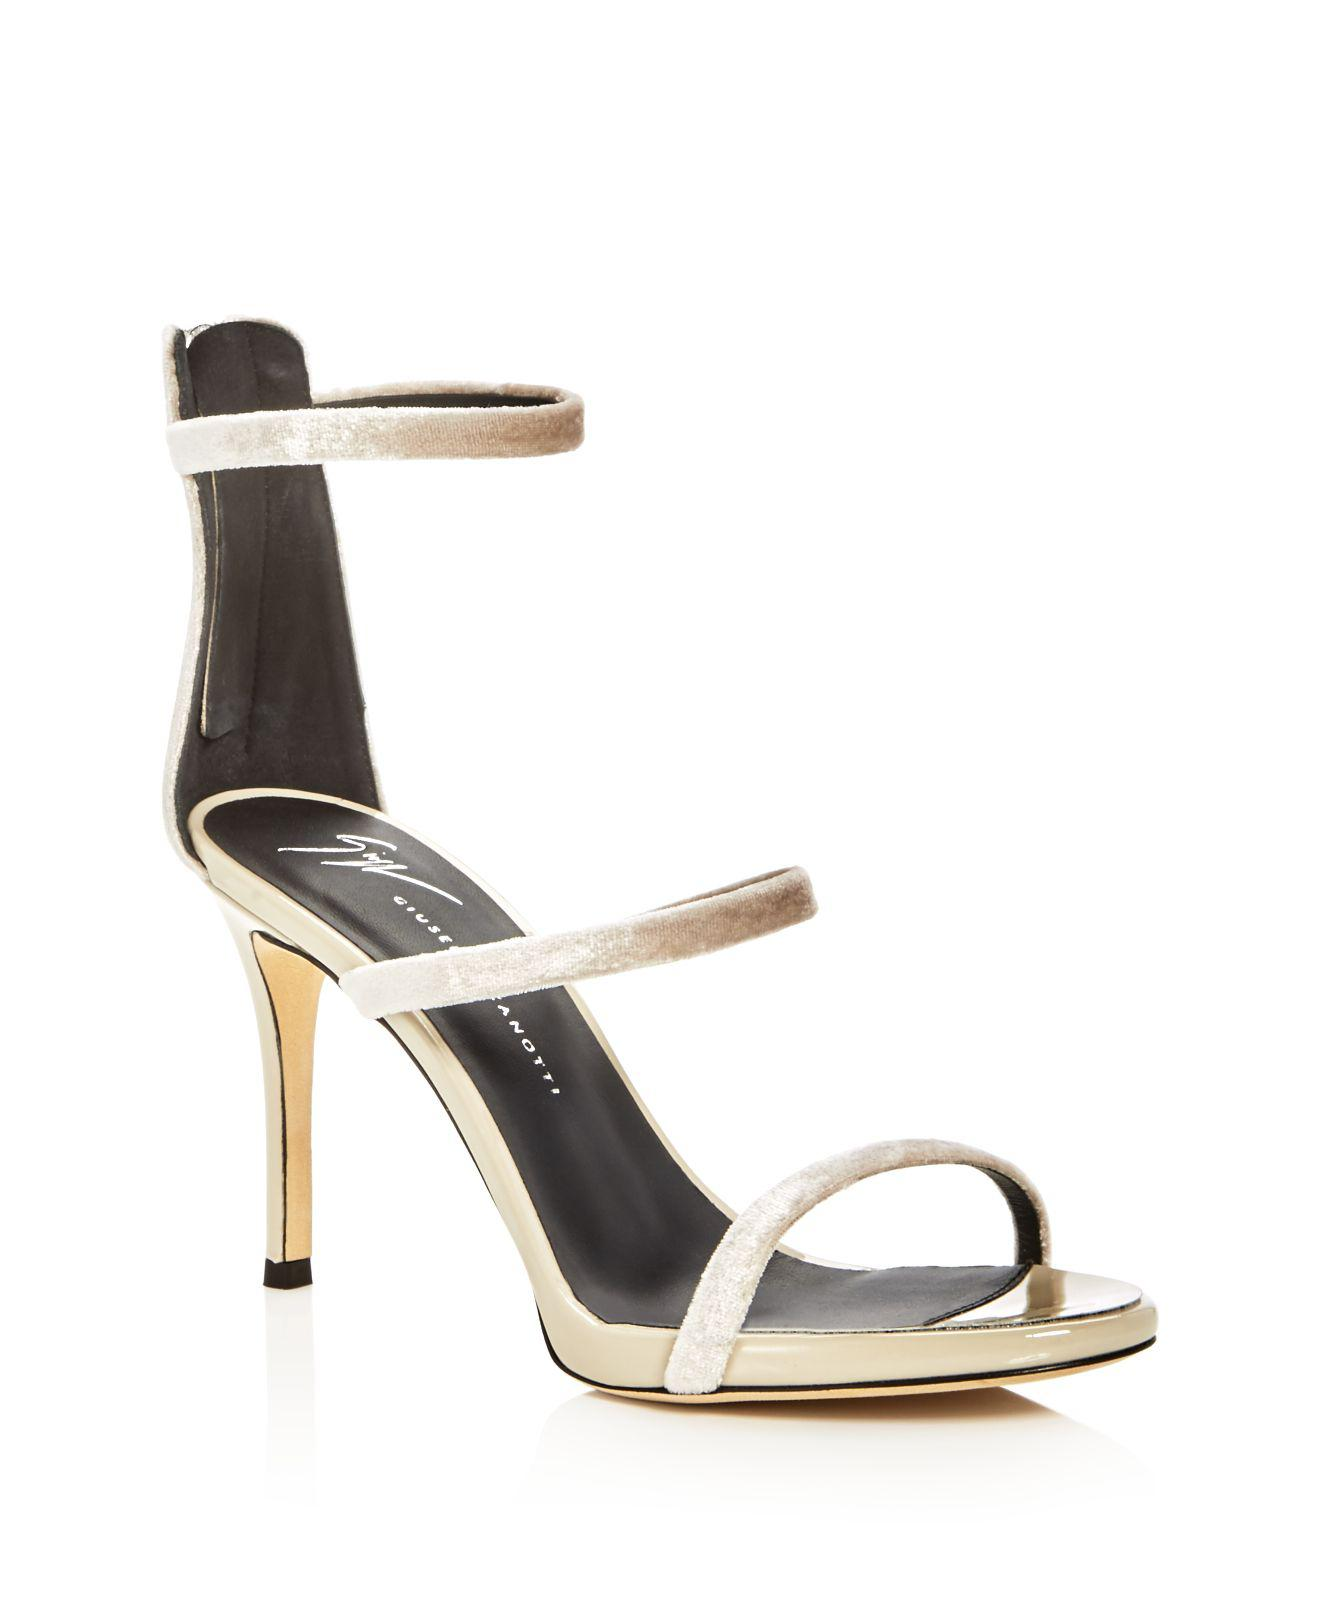 Alien Crystal-embellished Velvet And Patent-leather Slingback Sandals - Black Giuseppe Zanotti may1z